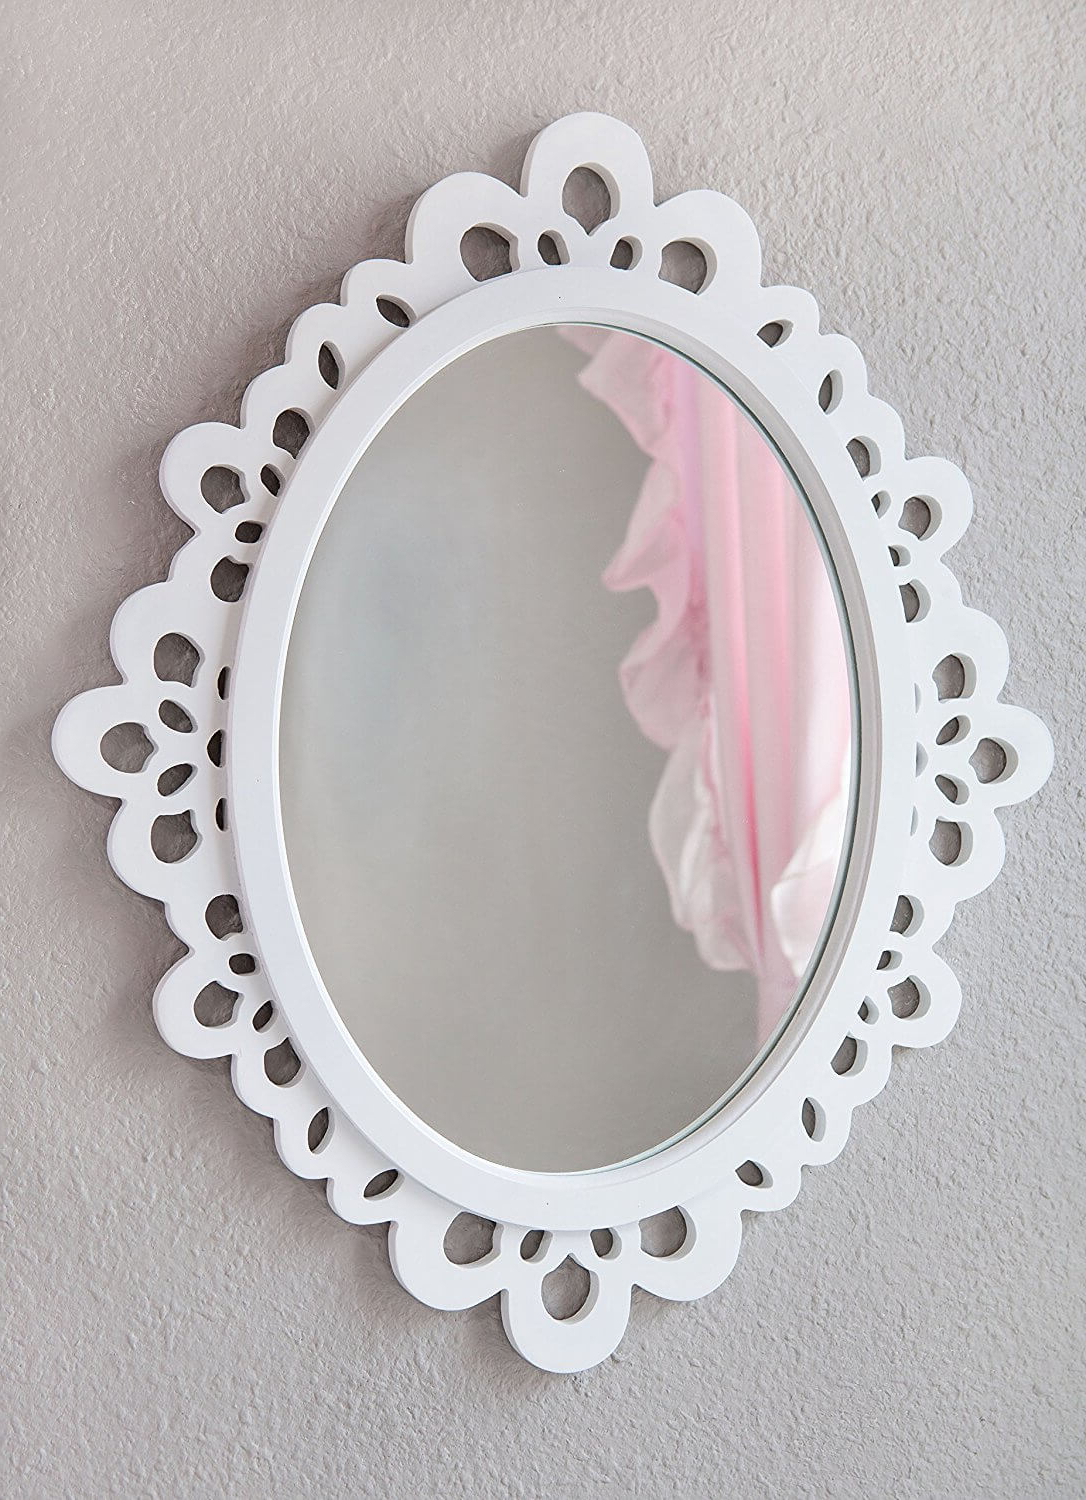 2019 Delightful Small Oval Beveled Mirror Shaving Ideas Depot Frame With Small Oval Wall Mirrors (View 1 of 20)